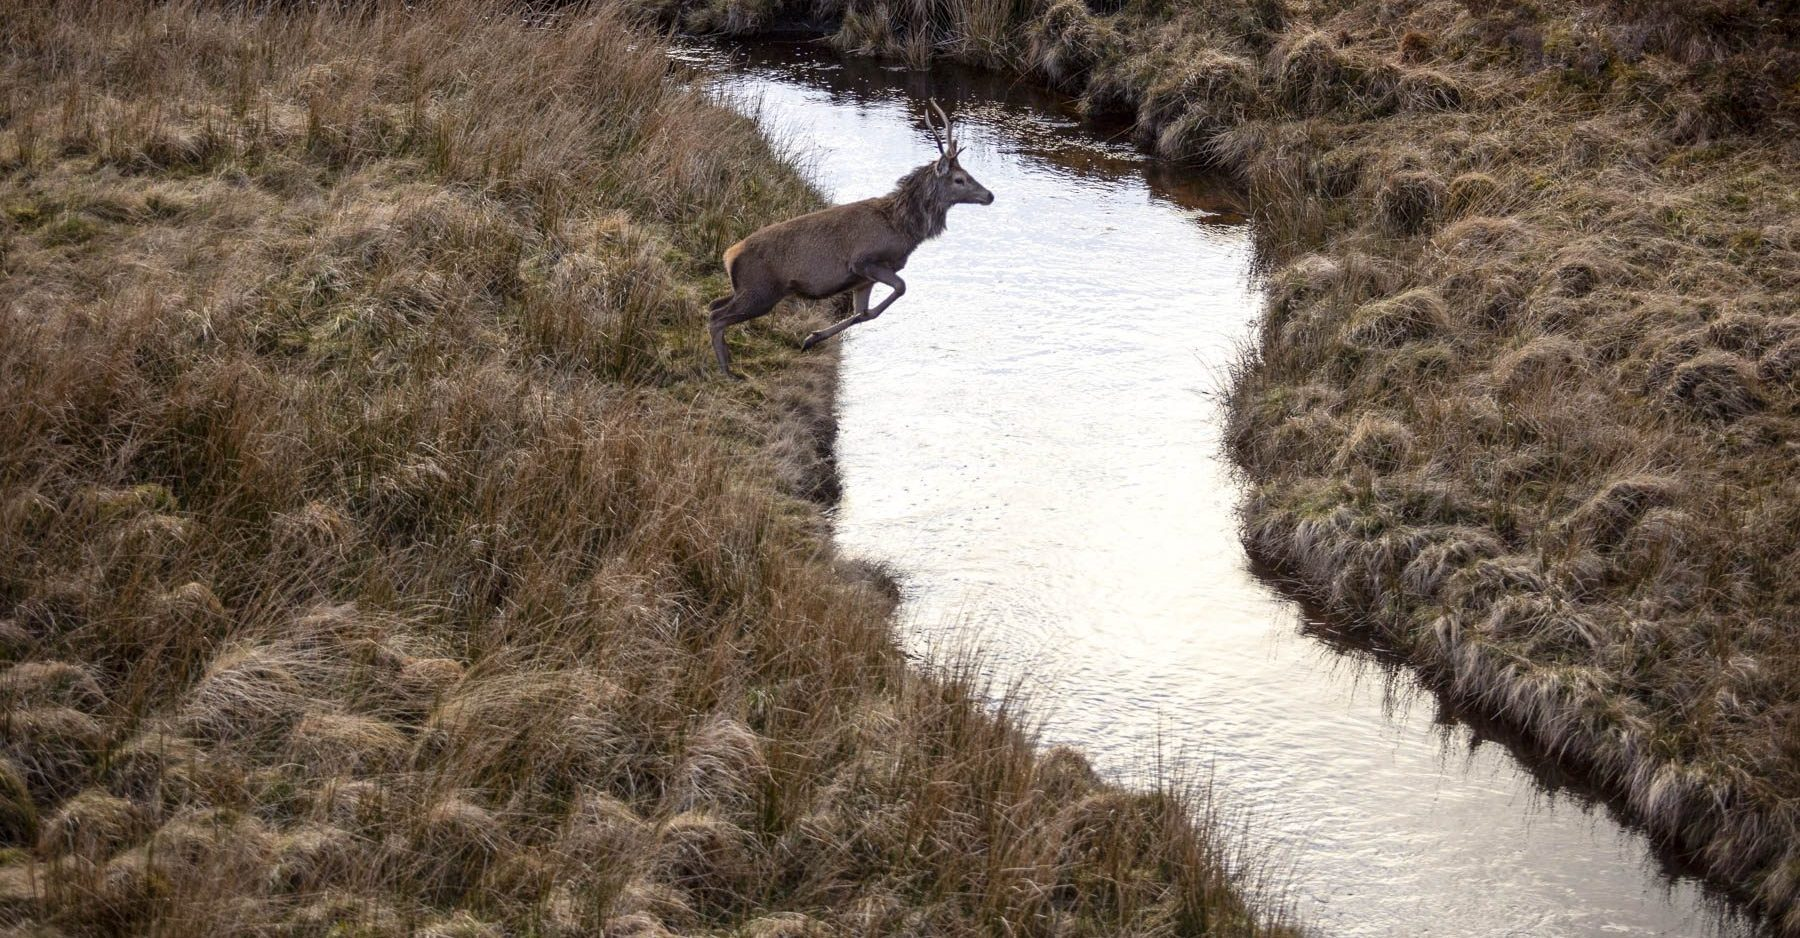 Leaping stag, Assynt, Sutherland, Scottish Highlands